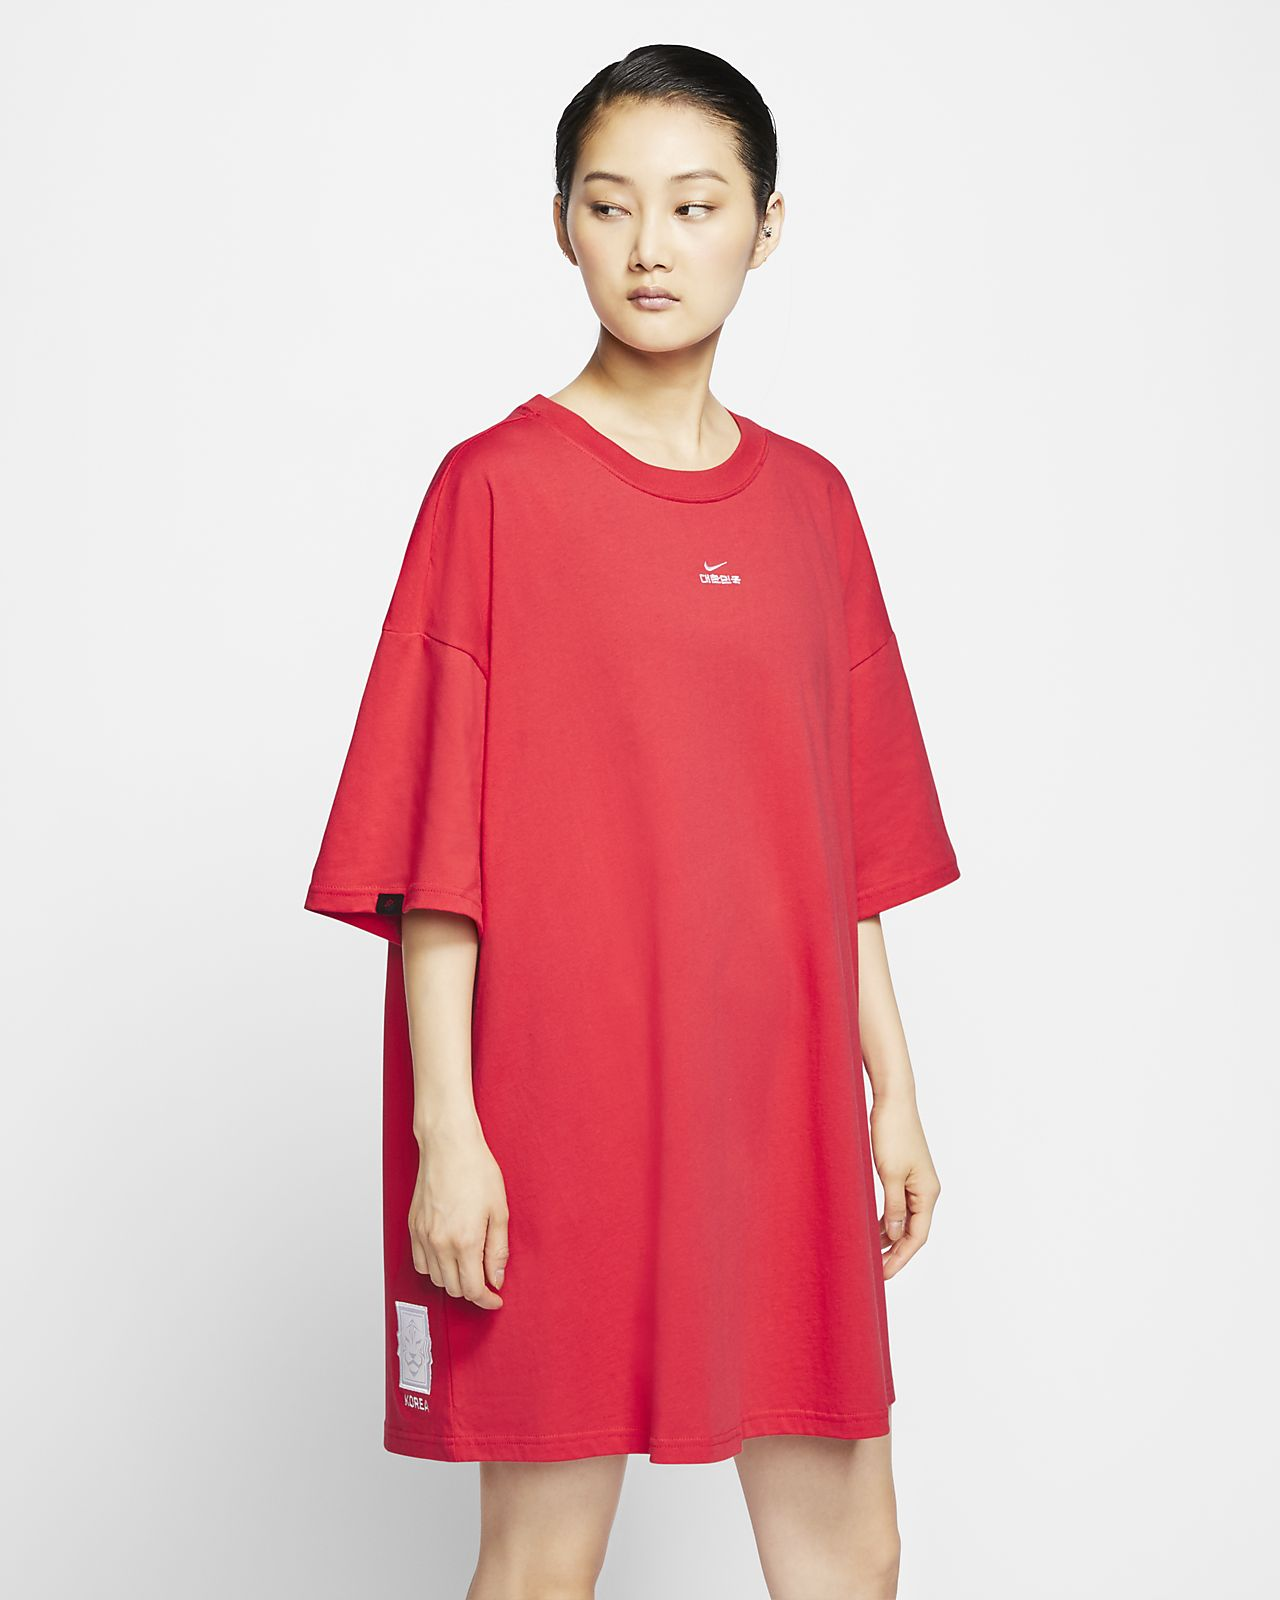 Korea Essential Women's Dress